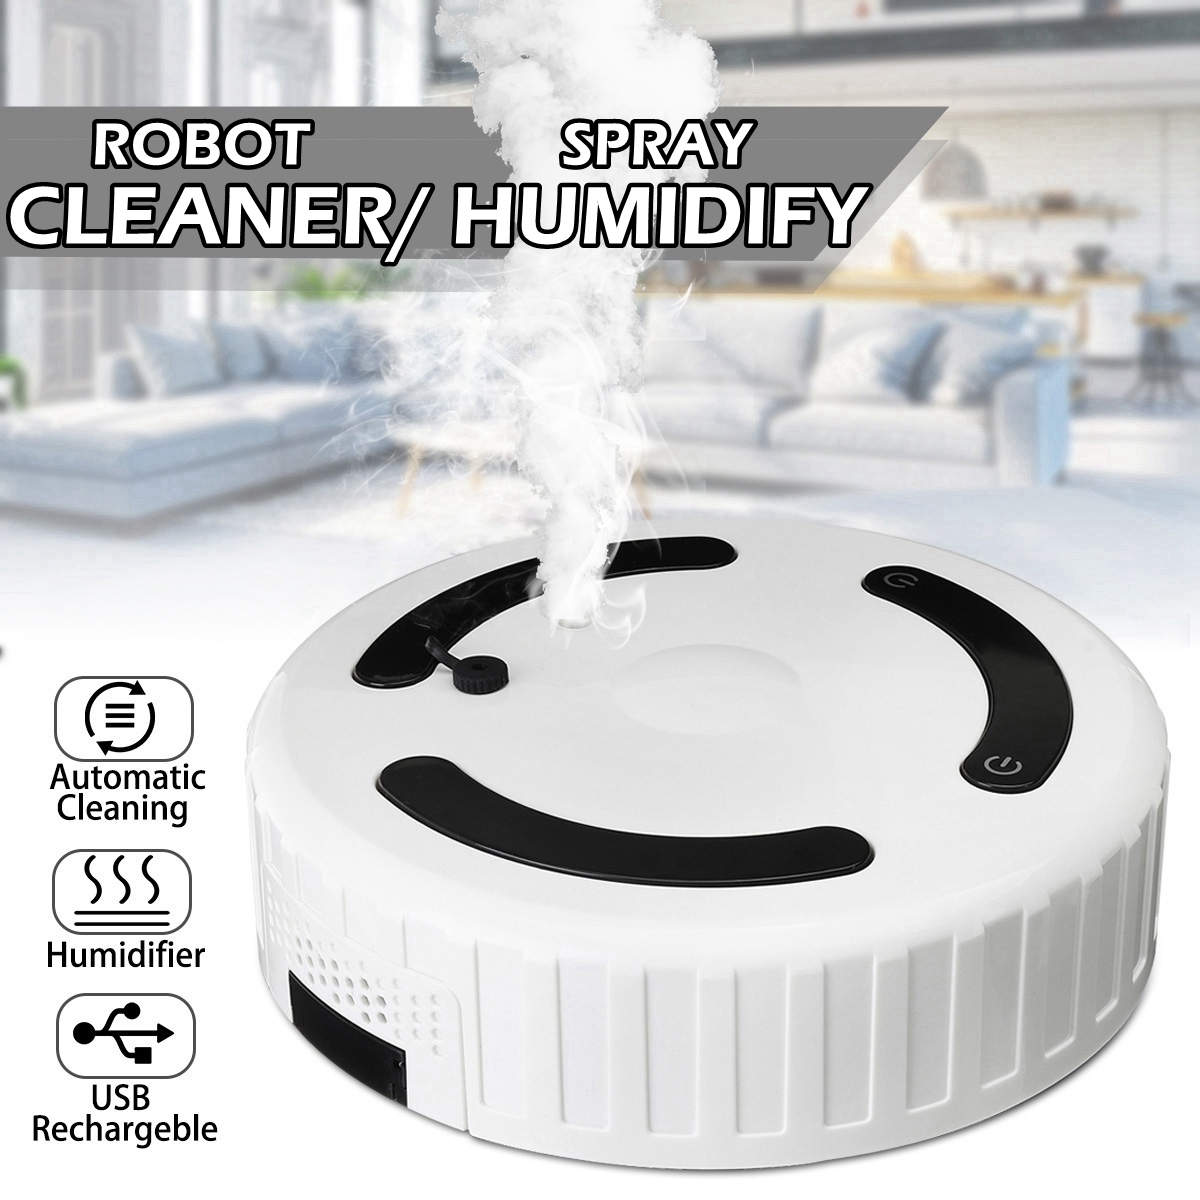 3 In 1 Smart Sweeping Robot Humidifier Automatic Vacuum Cleaner Strong Suction Dry Wet Clean Robot with Humidify Home Appliances